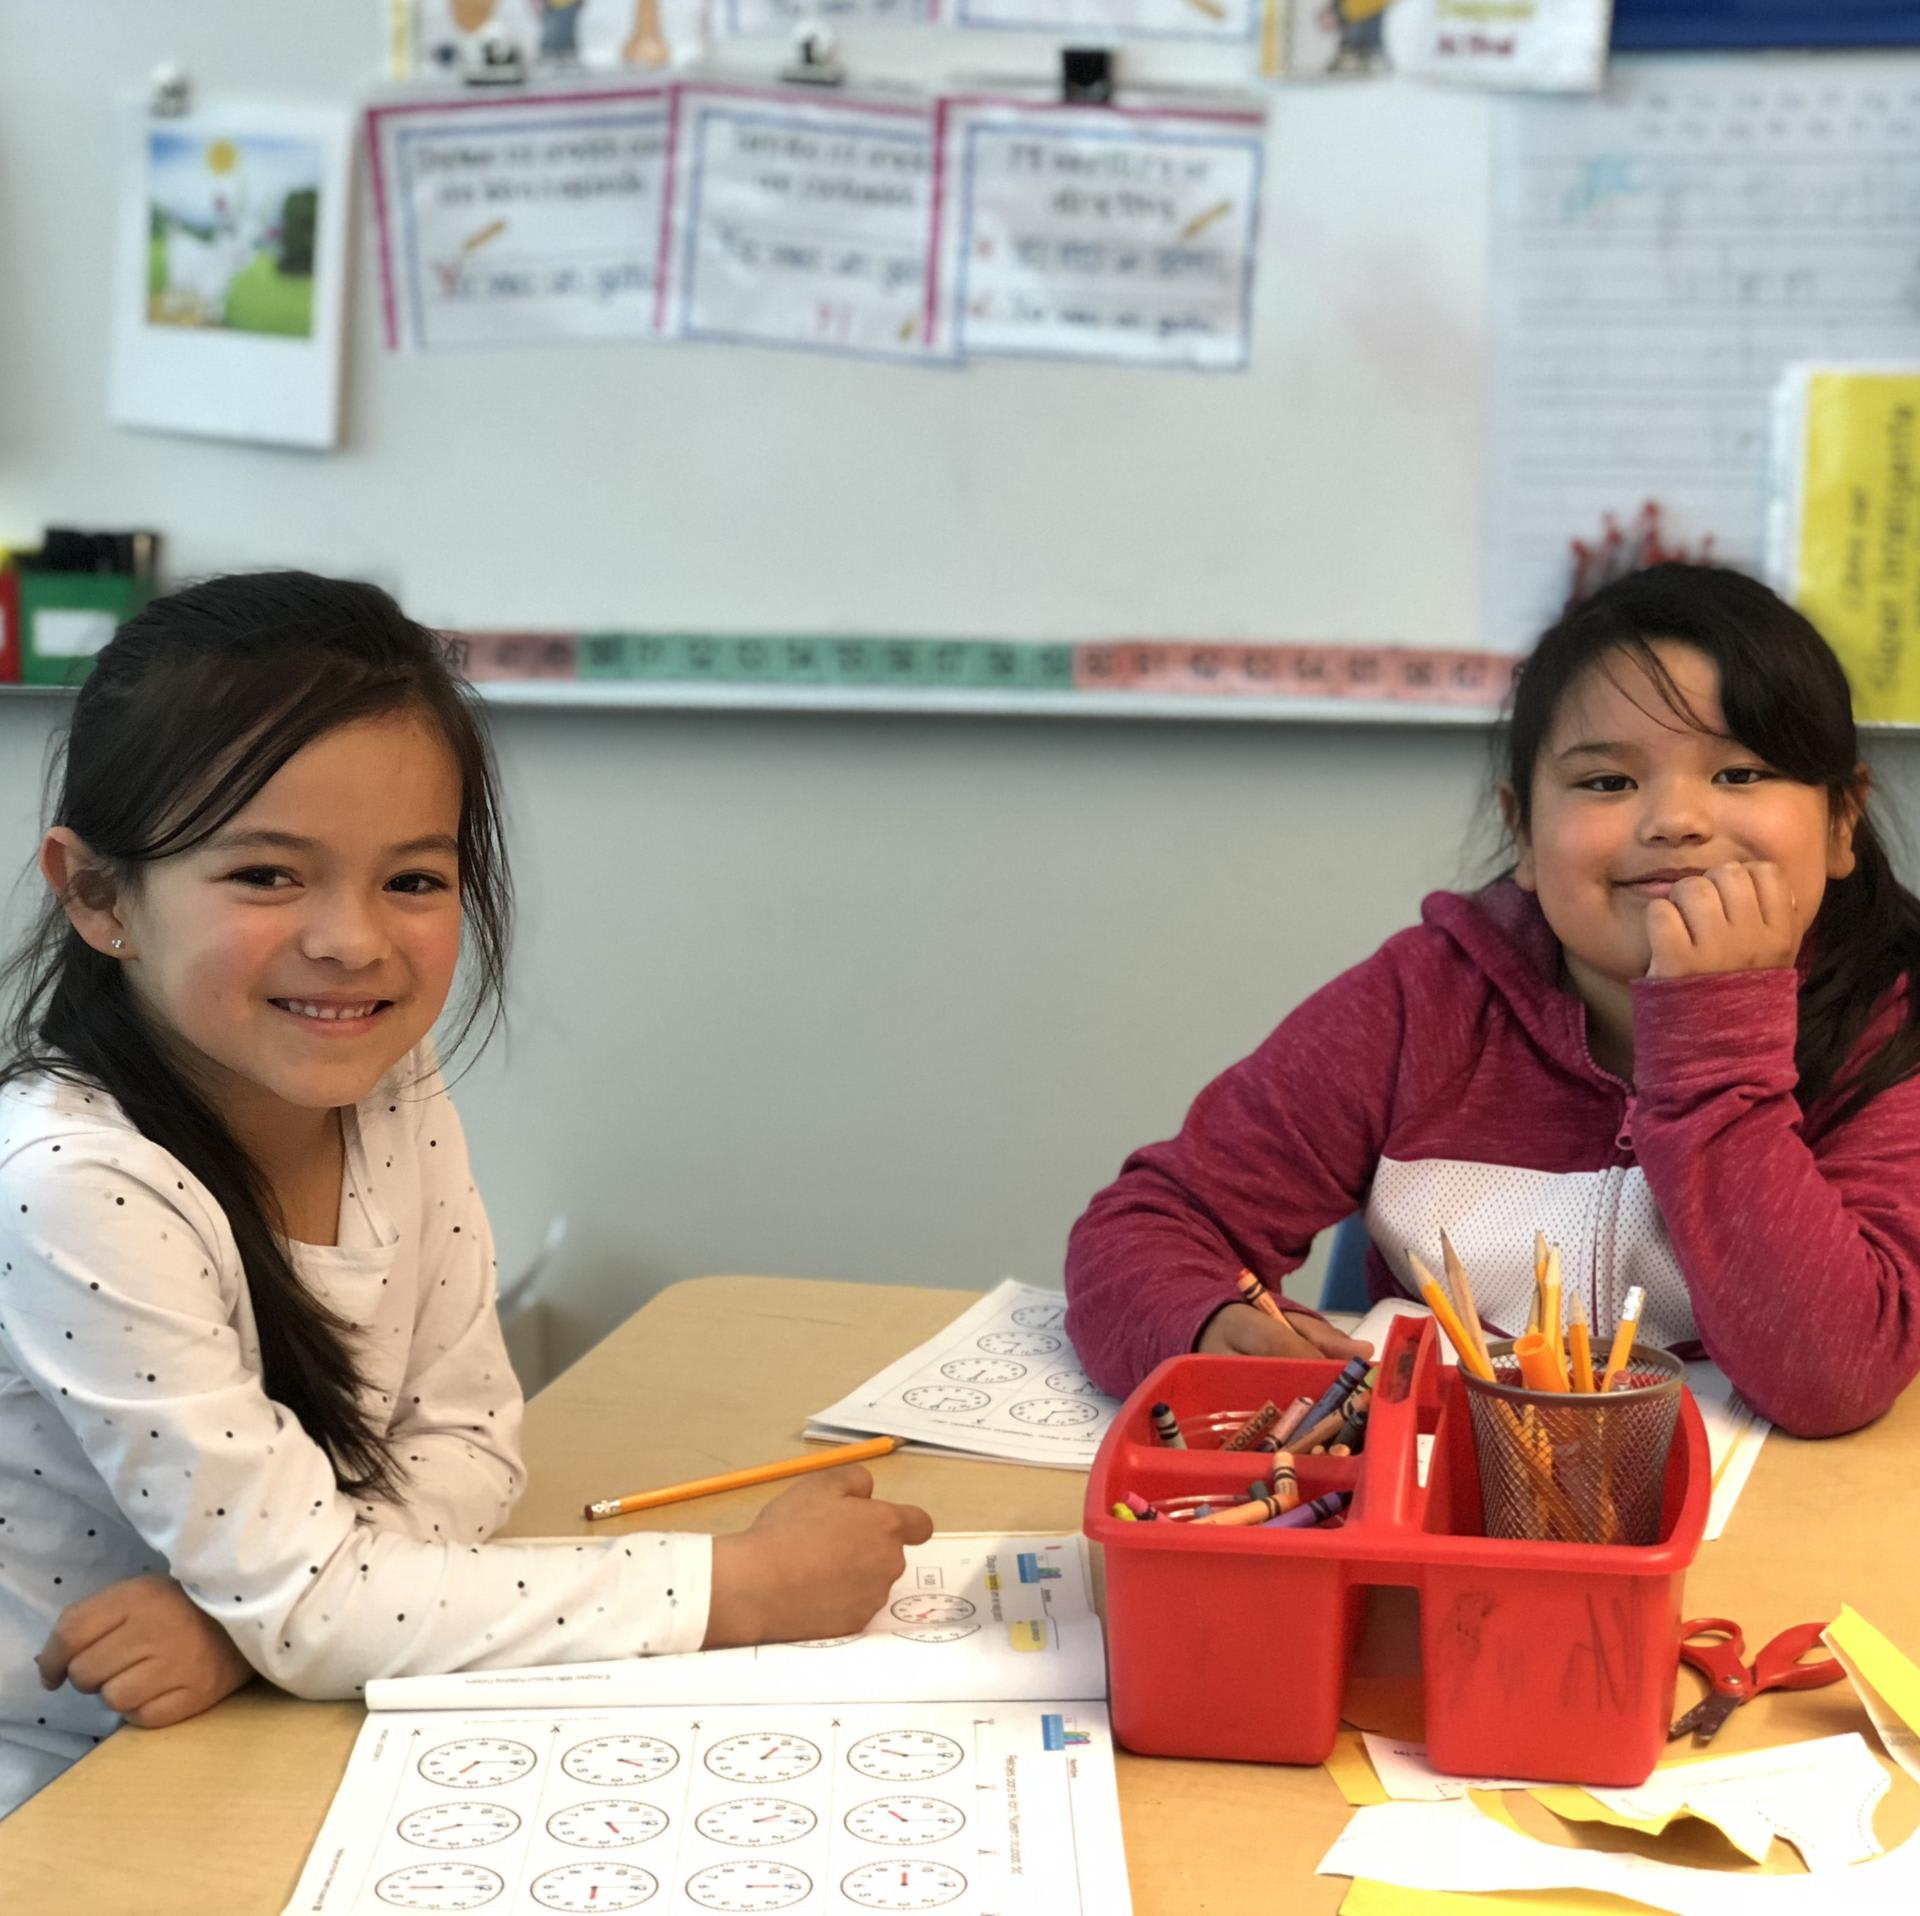 2 students in class smiling